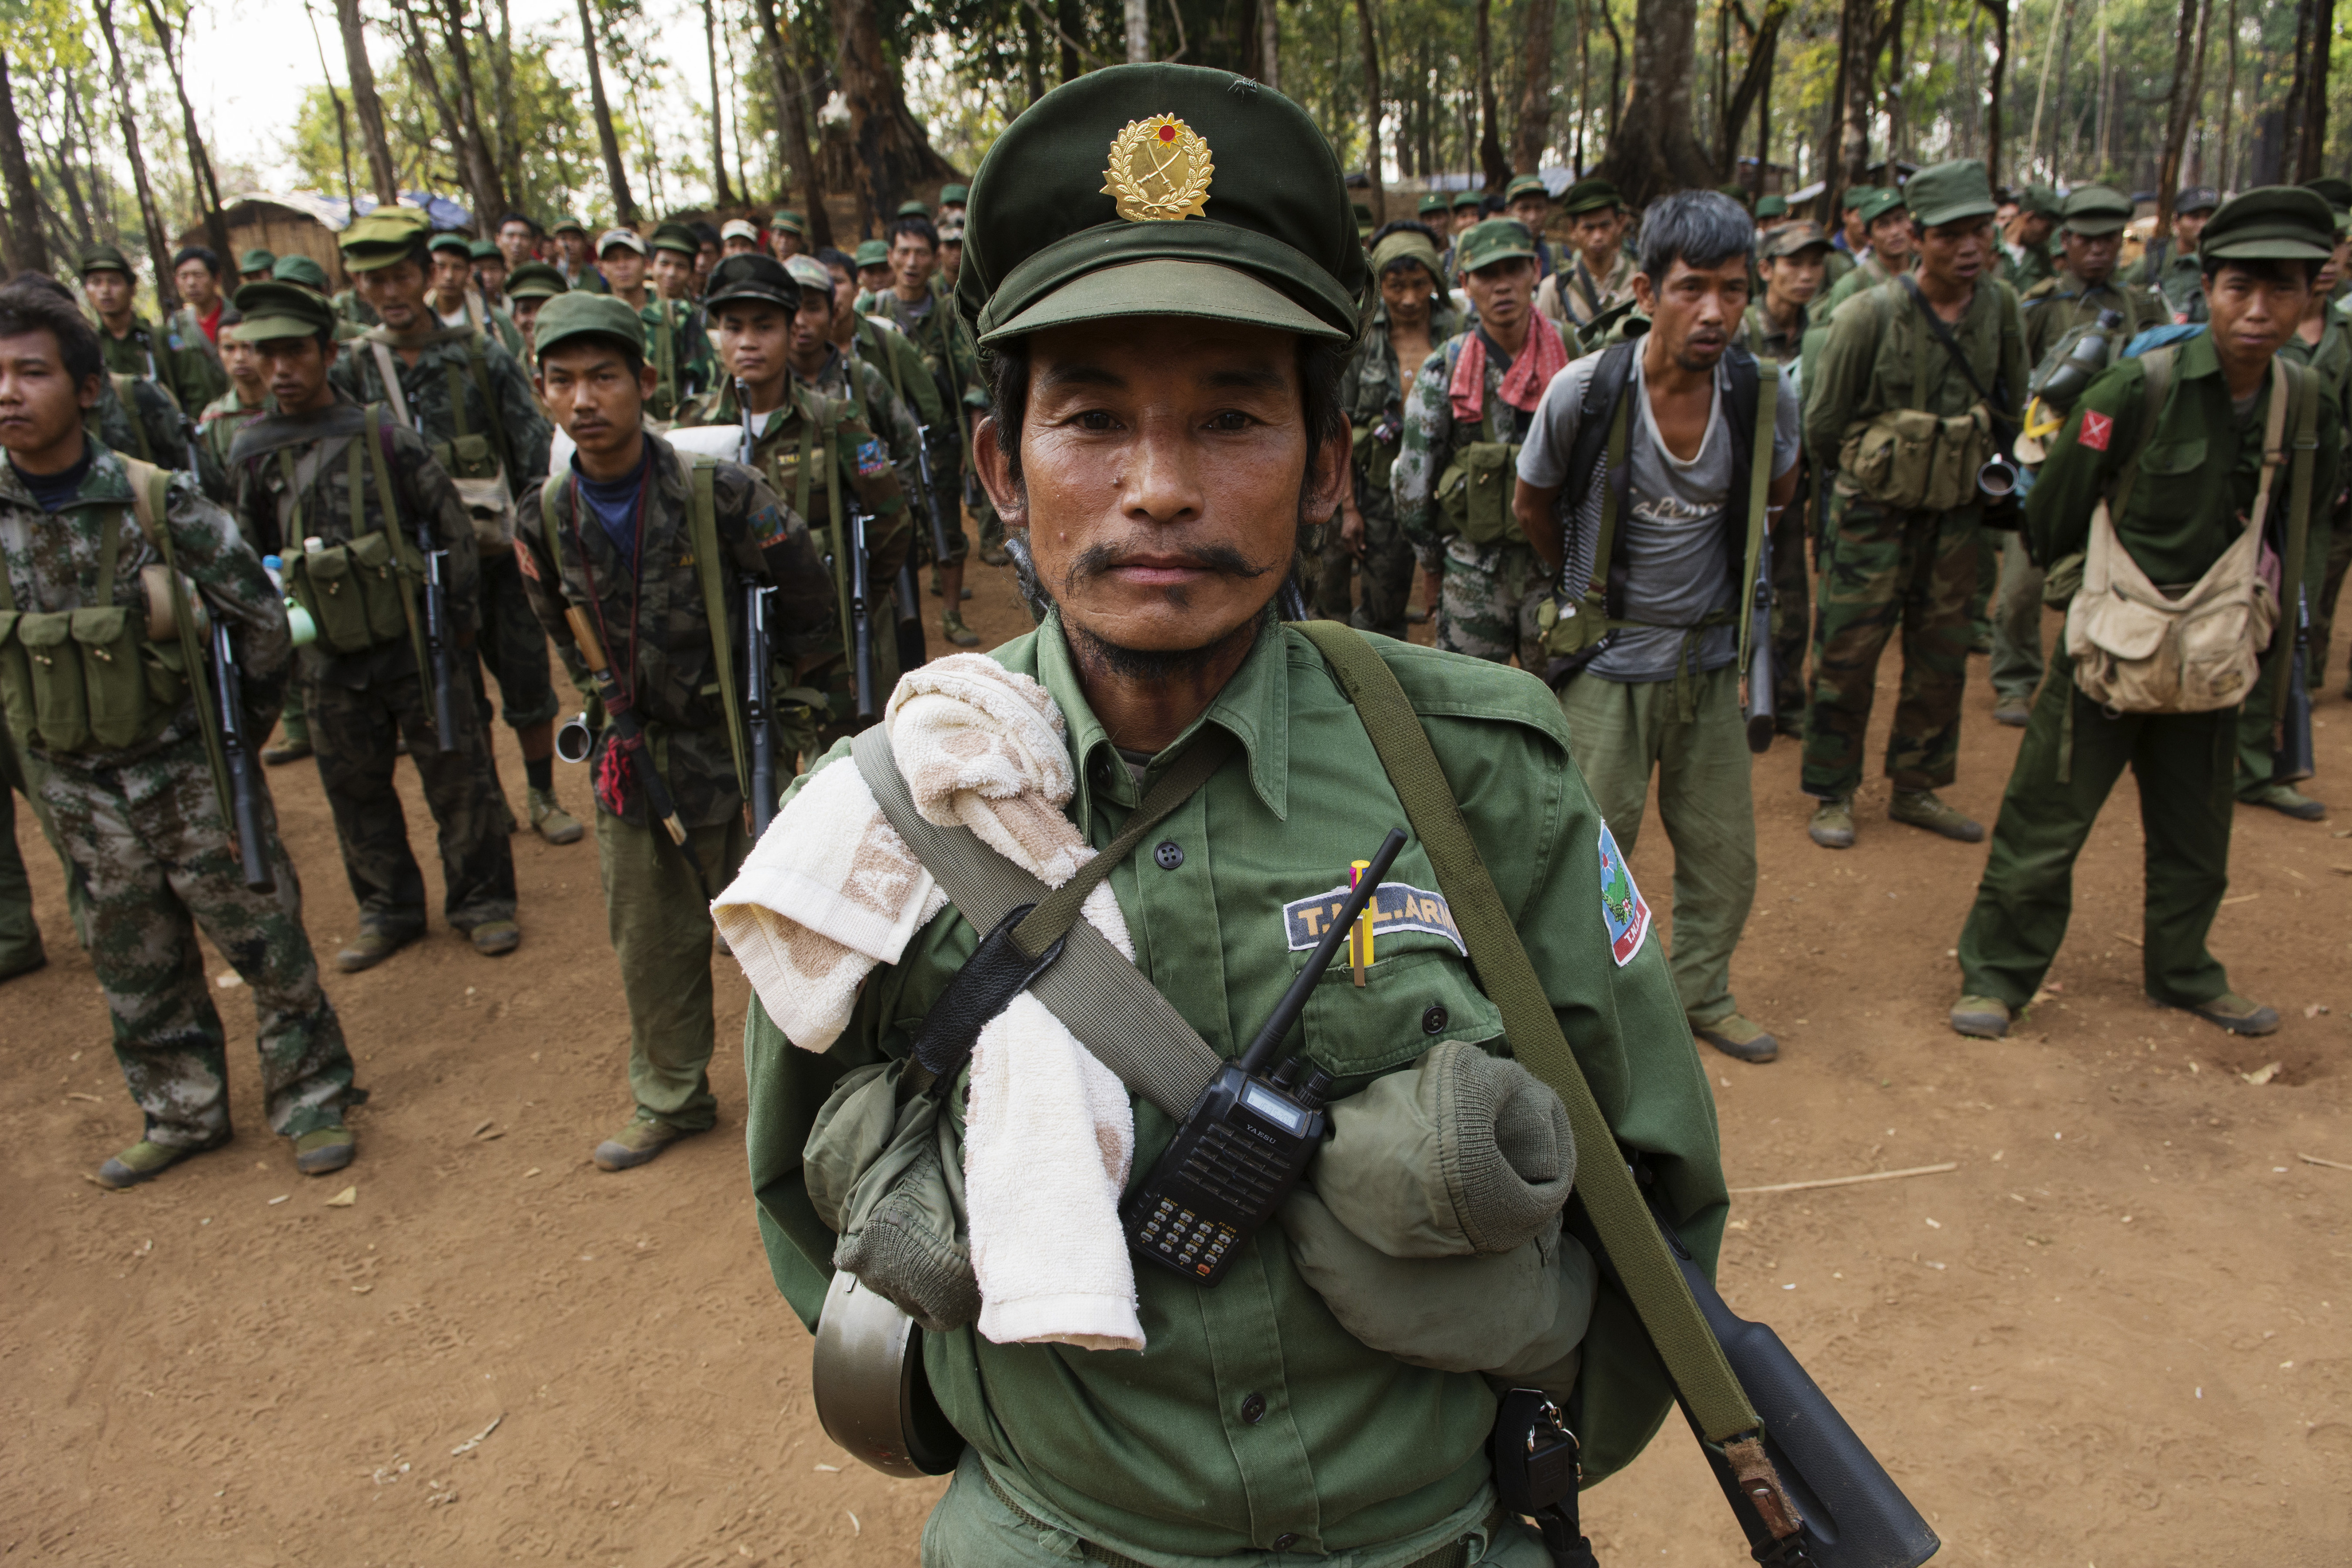 An officer from the Ta'ang National Liberation Army stands at attention with his soldiers during a morning gathering in a military camp